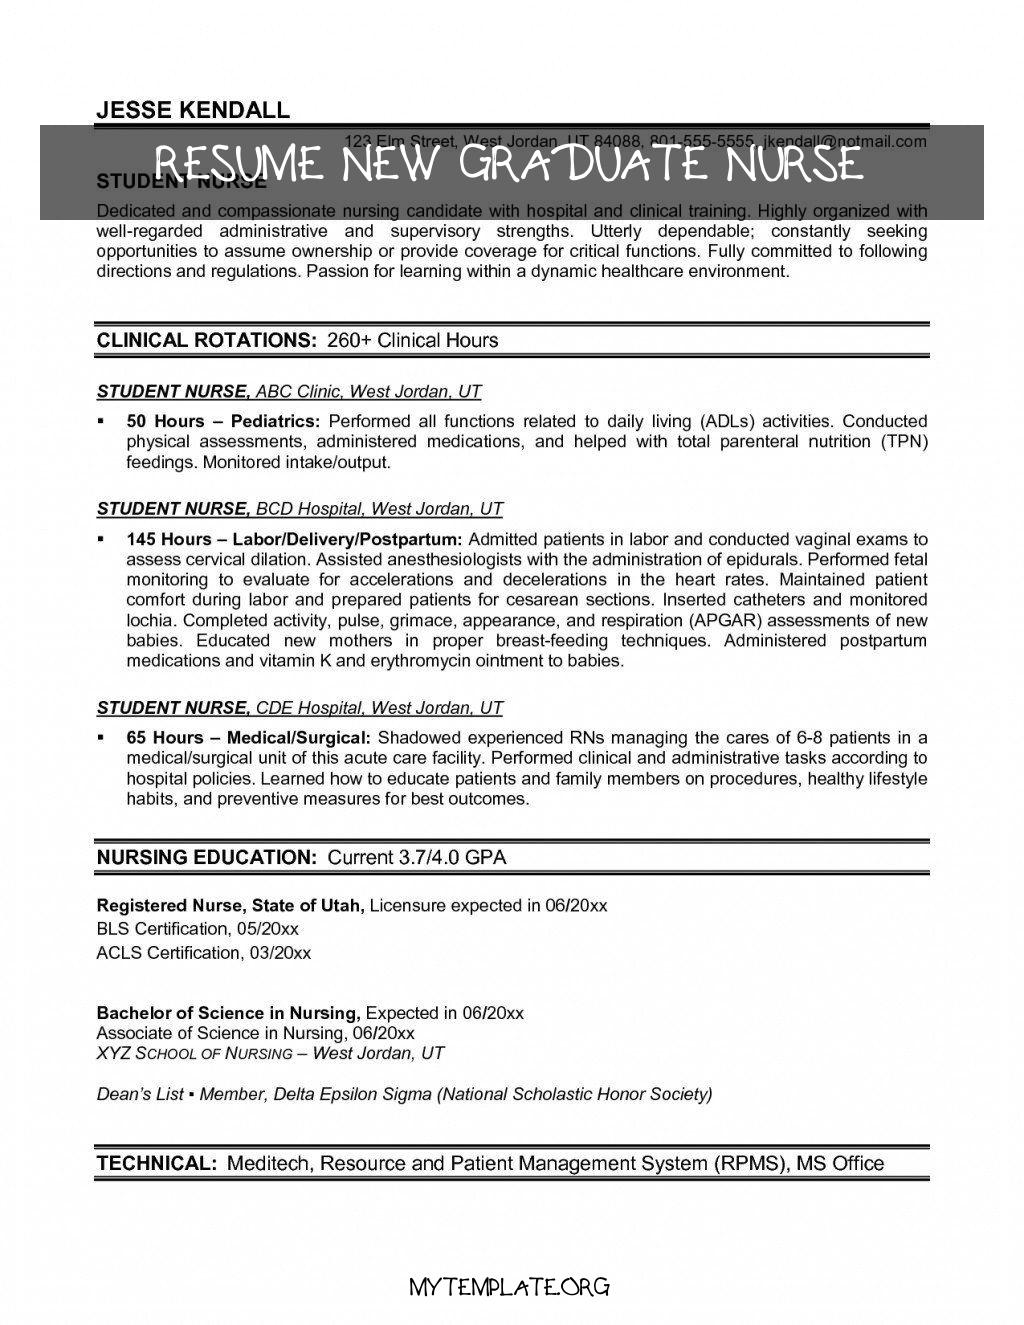 resume new graduate nurse of new grad rn resume luxury recent graduate resume template